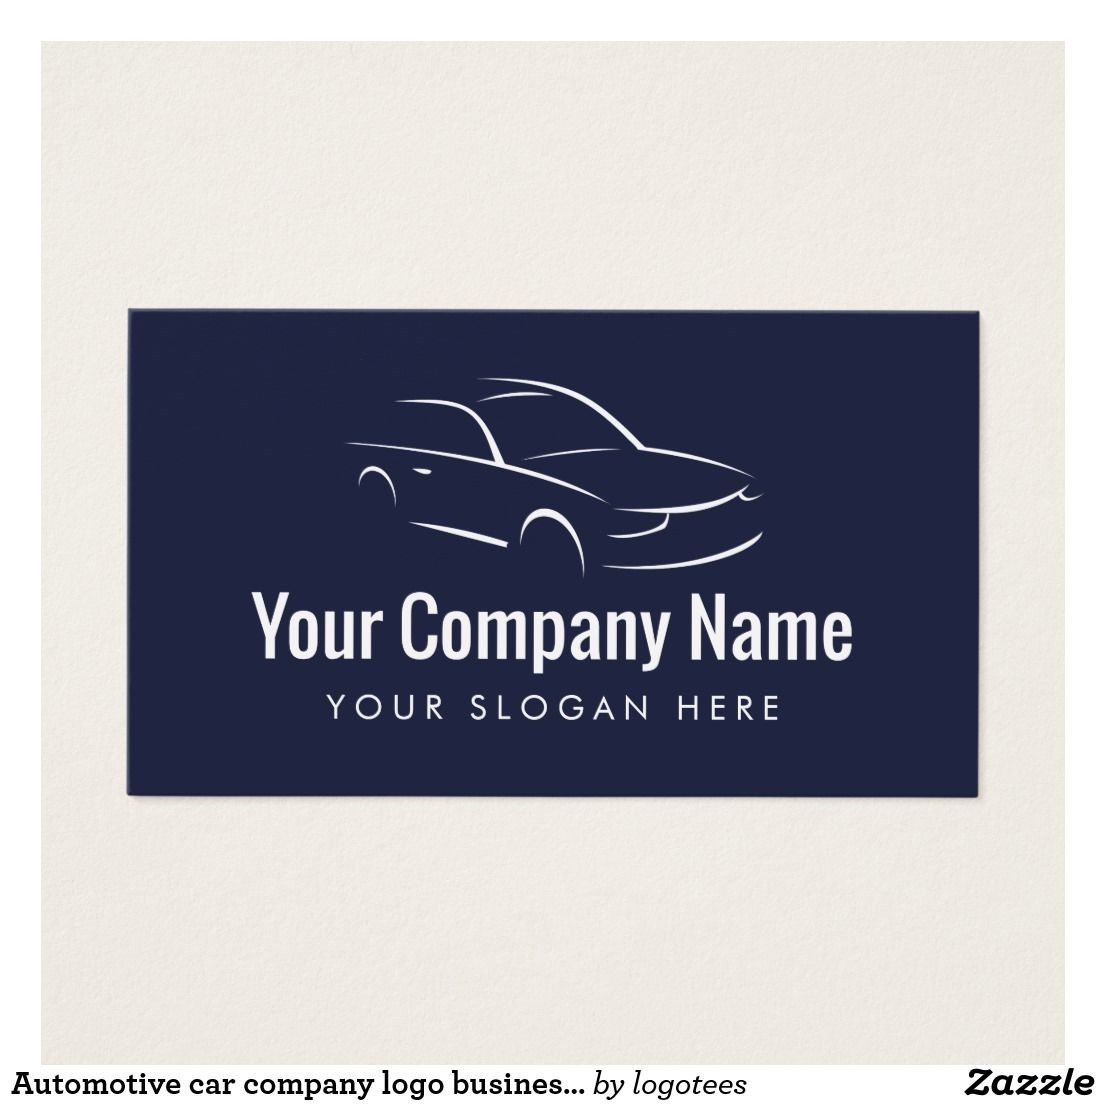 Automotive car company logo business card template modern simple automotive car company logo business card template modern simple visit card for car dealer magicingreecefo Image collections